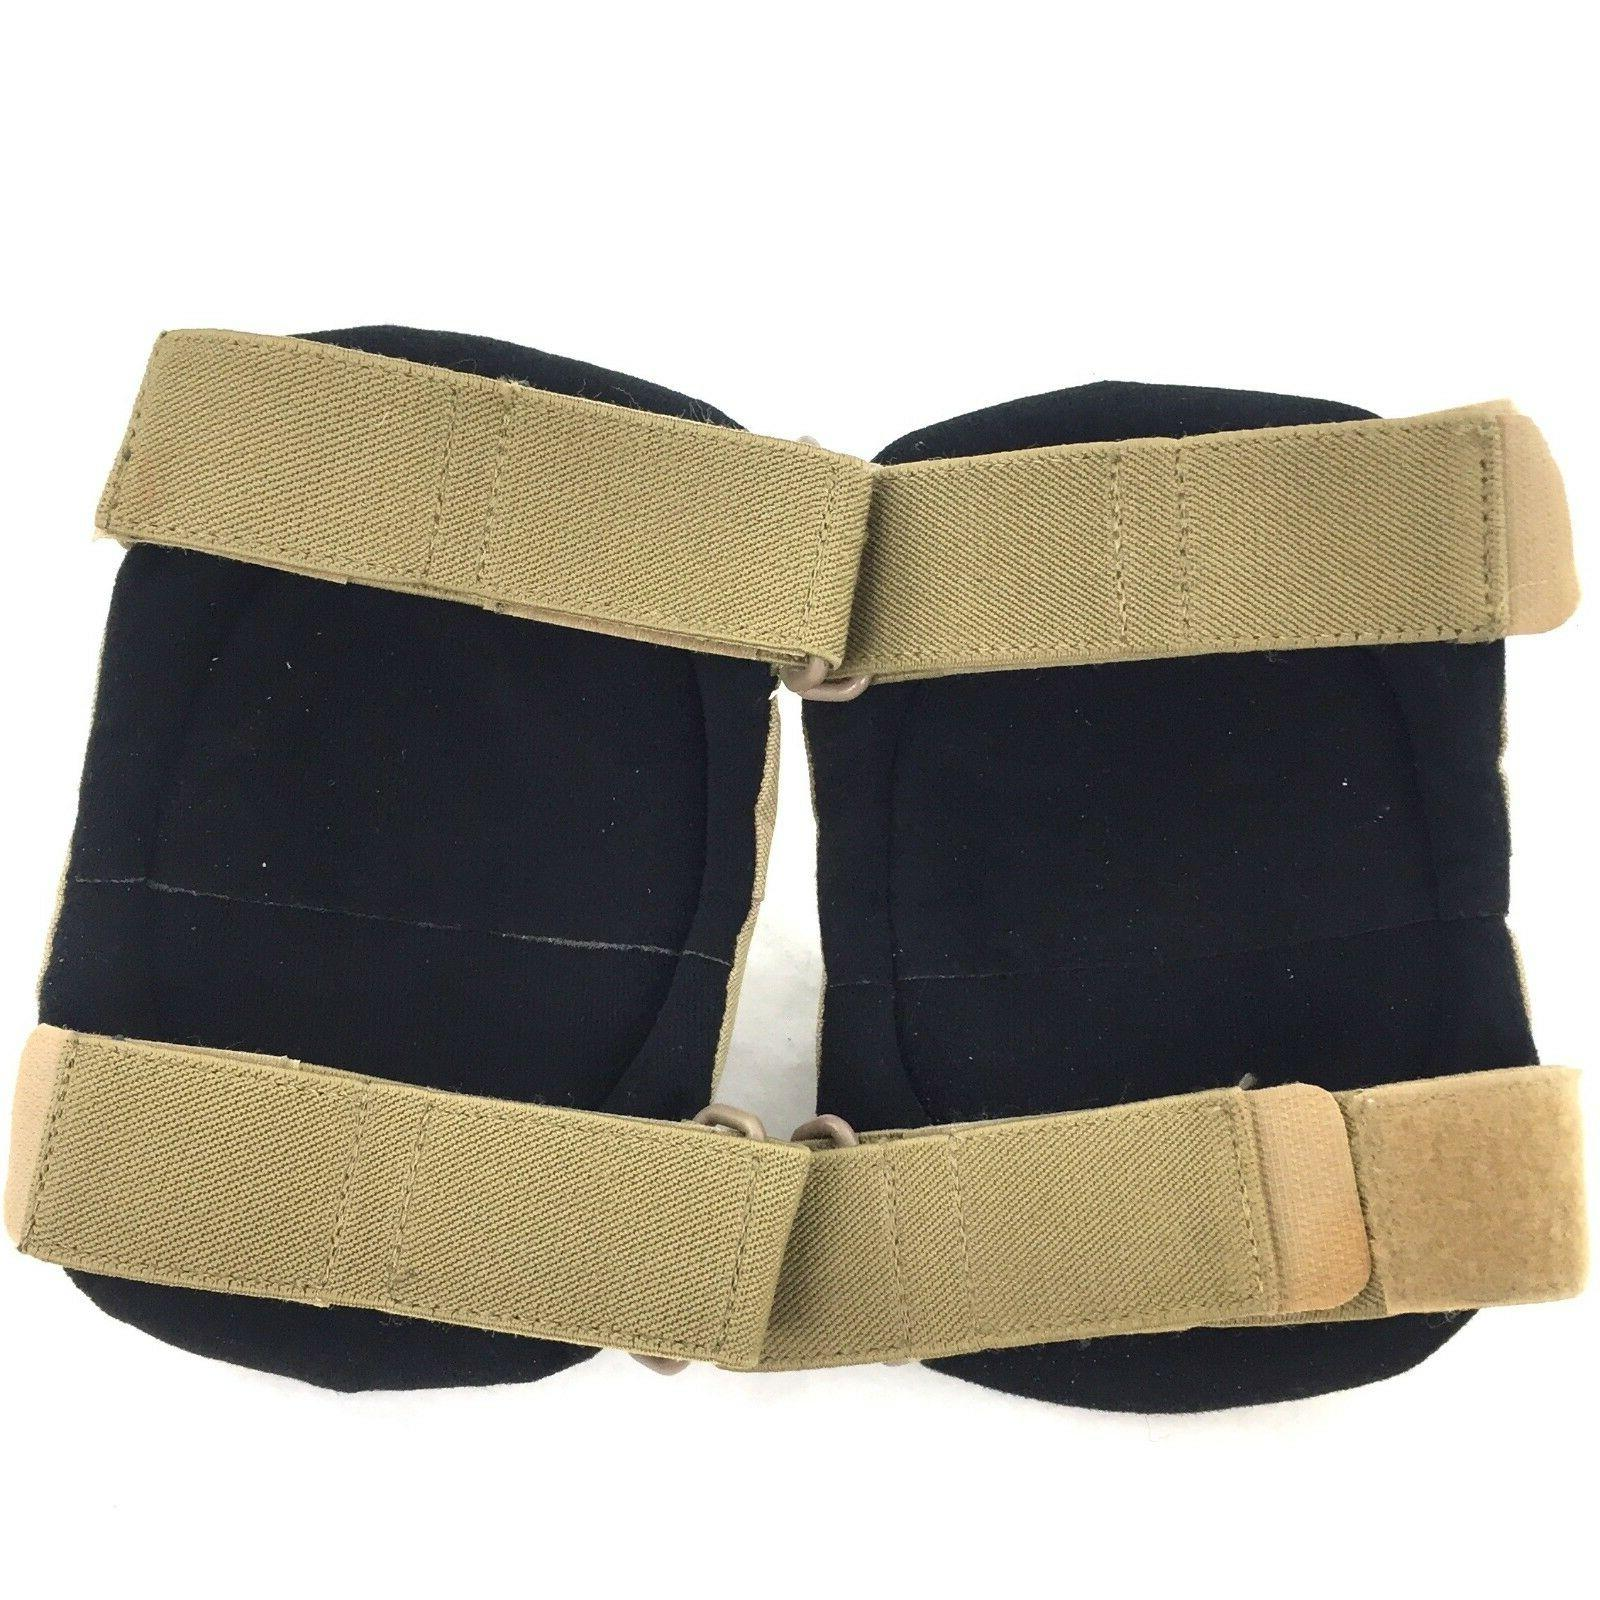 Blackhawk! Advanced Tactical Elbow Polyurethane Pad